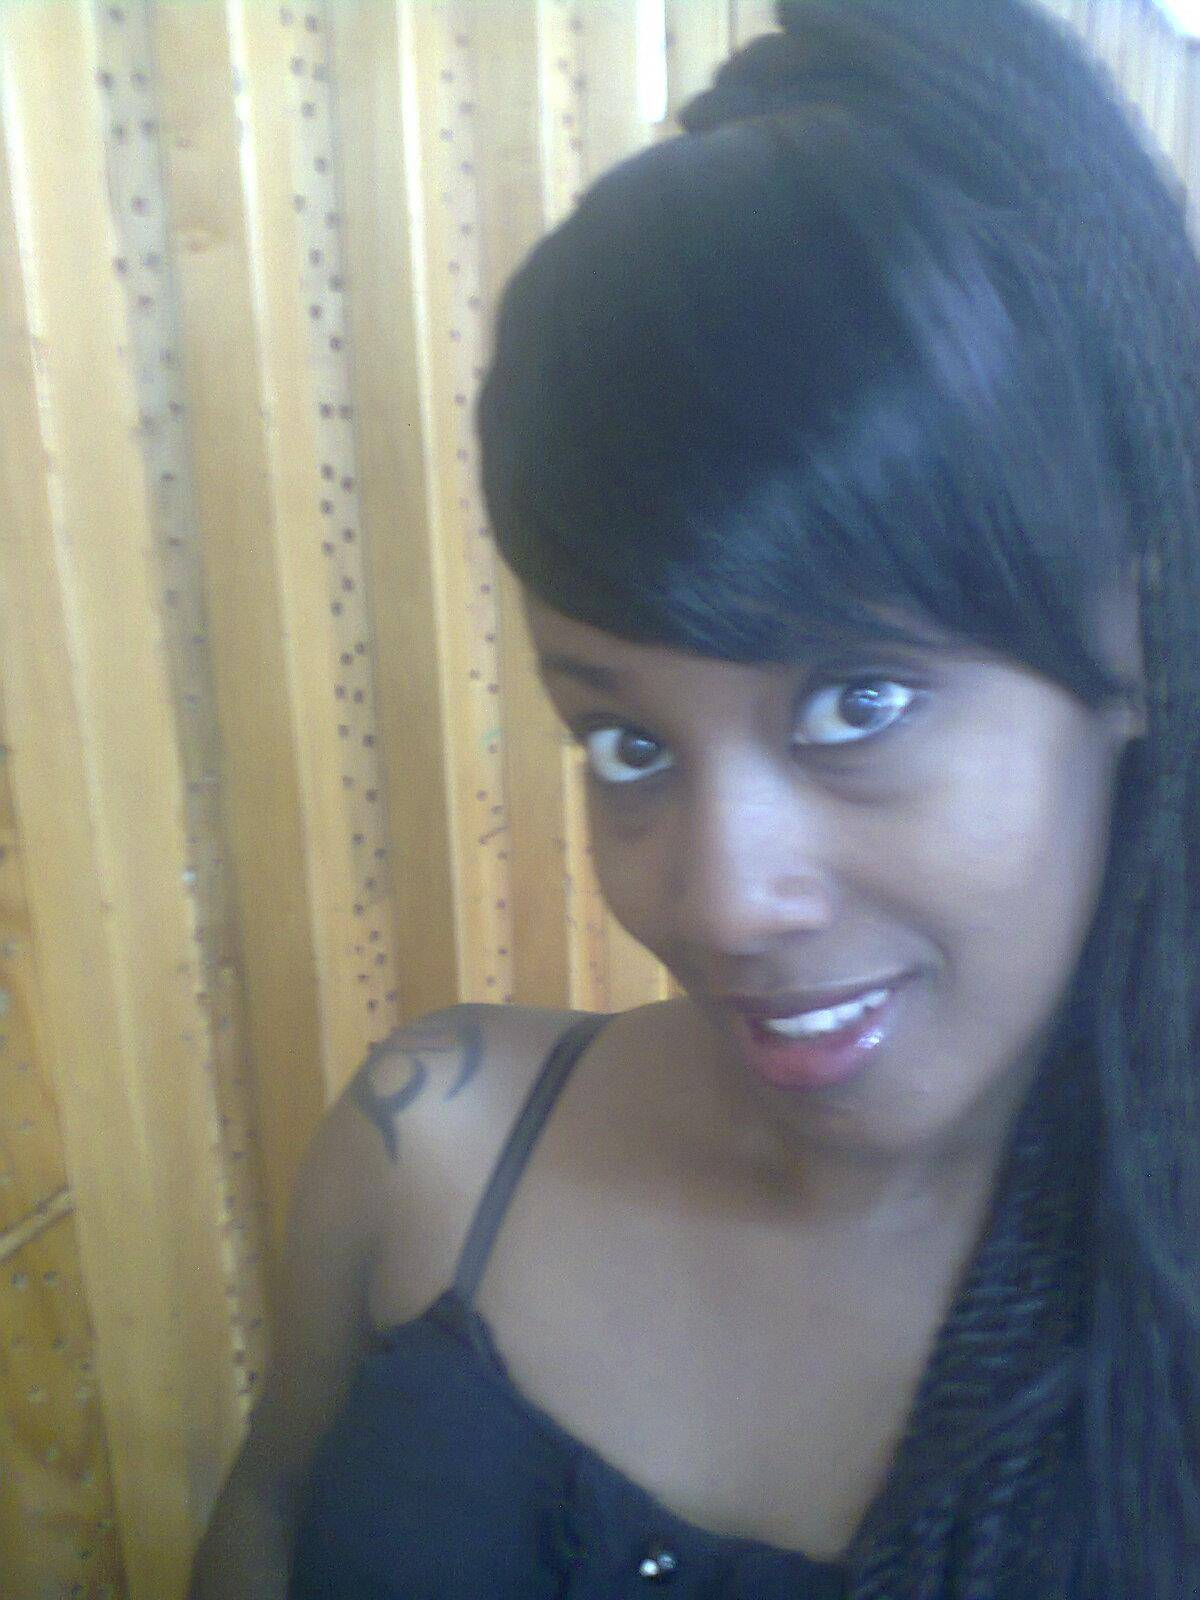 kenyan ladies dating site Nairobi dating site that connects kenyan singles living in nairobi xnairobi is truly an online dating avenue where nairobians meet and connect for love, dating, friendships, dating and marriage browse local singles profiles from every hood and estate in nairobi to find women to meet.